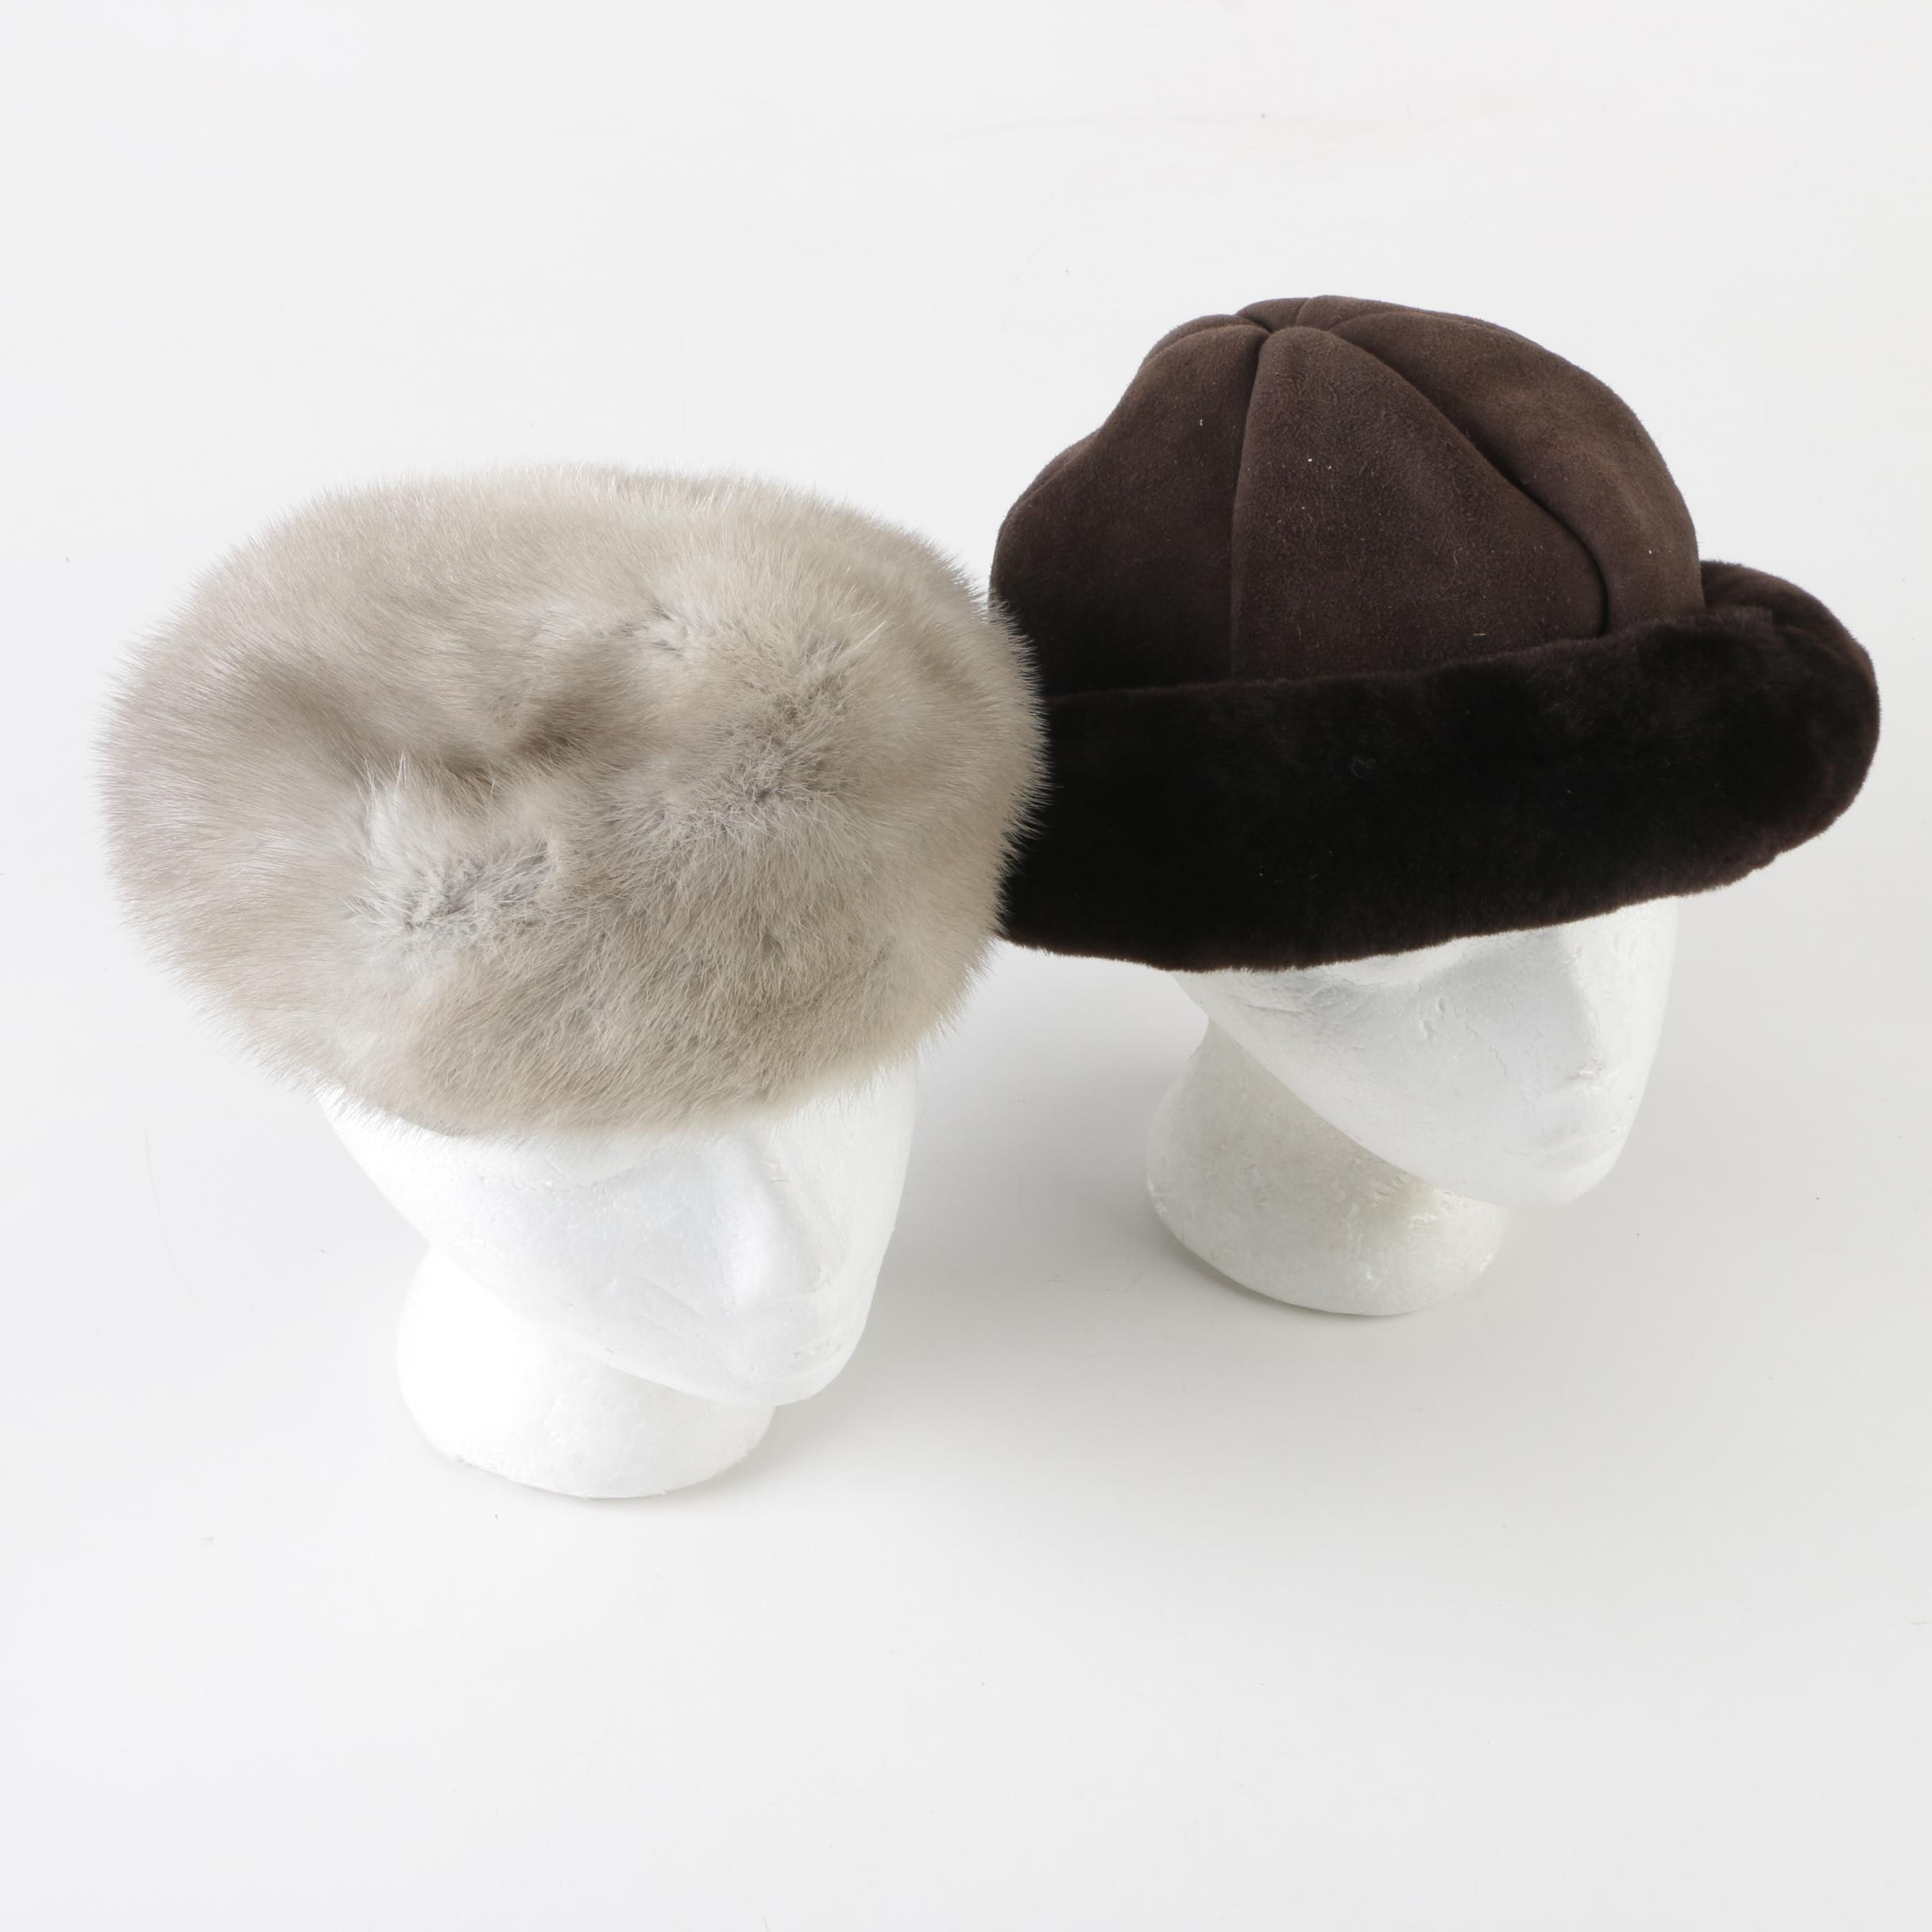 Lapaul's Mink Fur and Aston Brown Shearling Hats